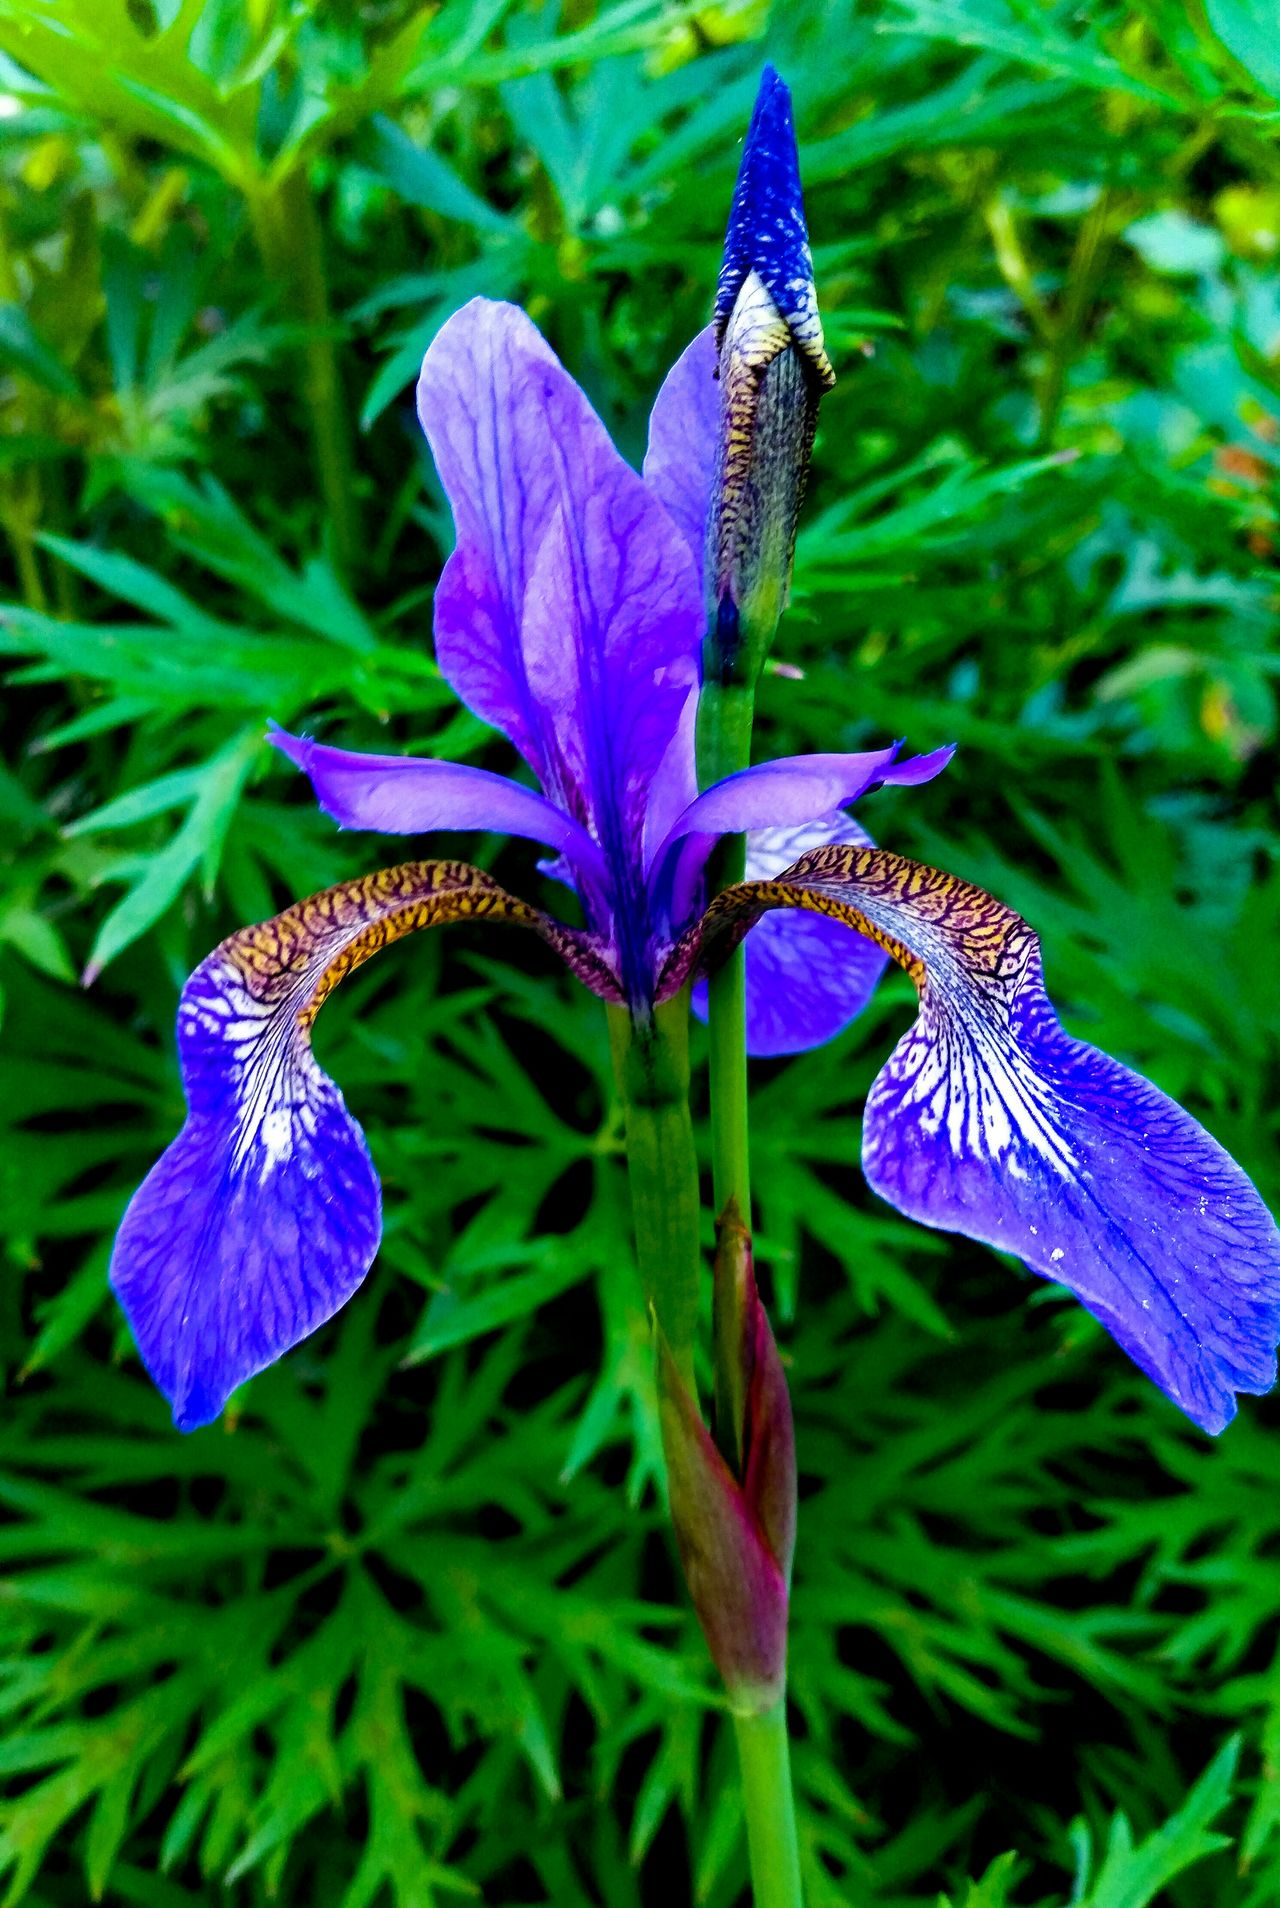 Irisflowers Deep Blue Purple Flower Symmetrical Fragility Flower Beauty In Nature Purple Flower Head Petal No People Countryside Landscape EyeEm Nature Lover Flowerphotography Springtime Still Life Photography Botany Evening Sun